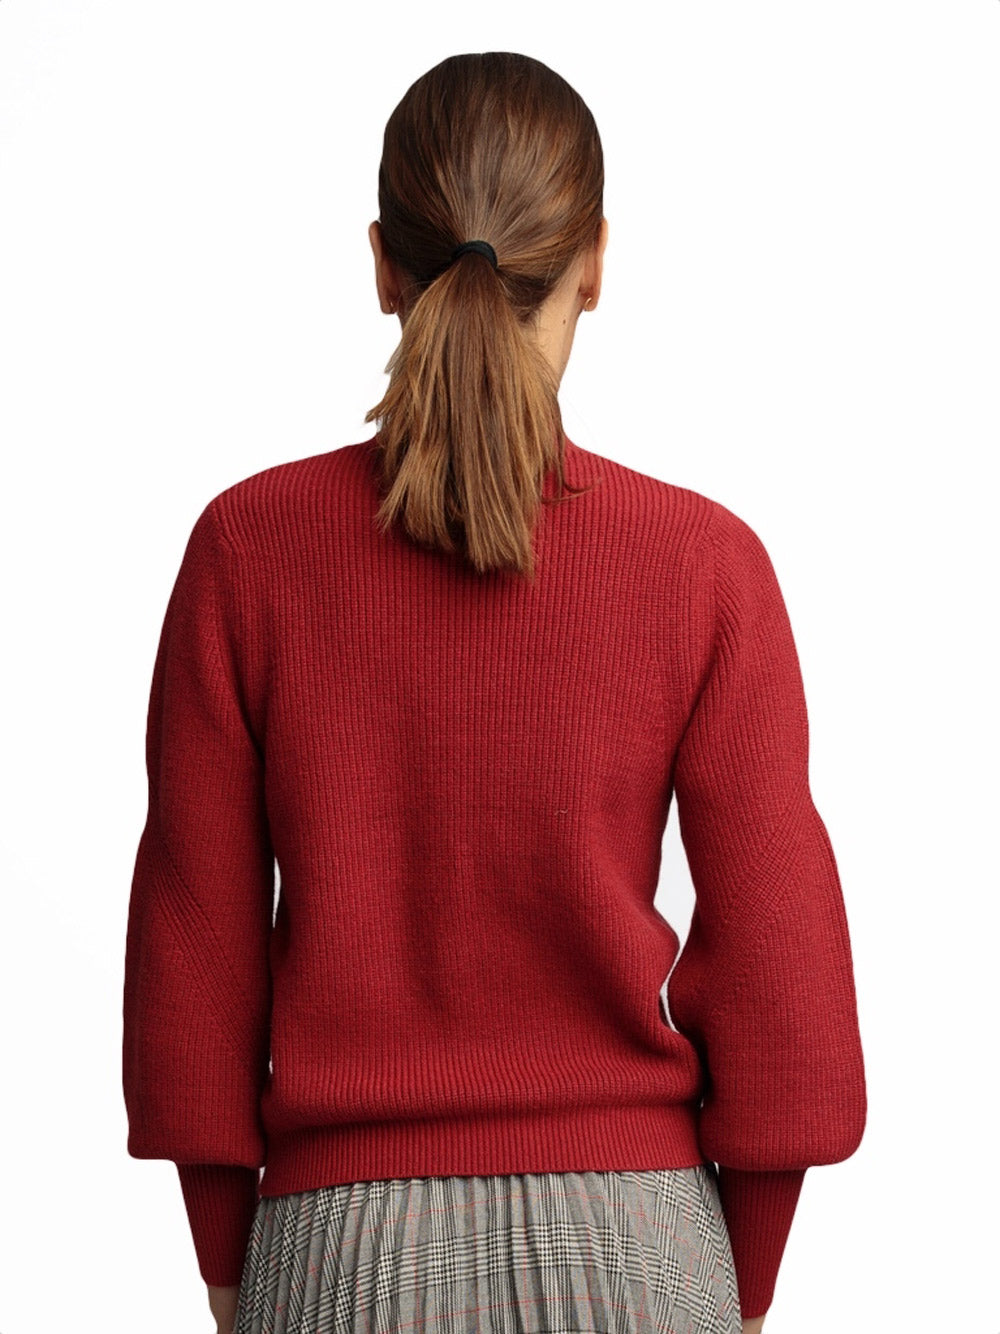 INZAGI Constance Knit - Red